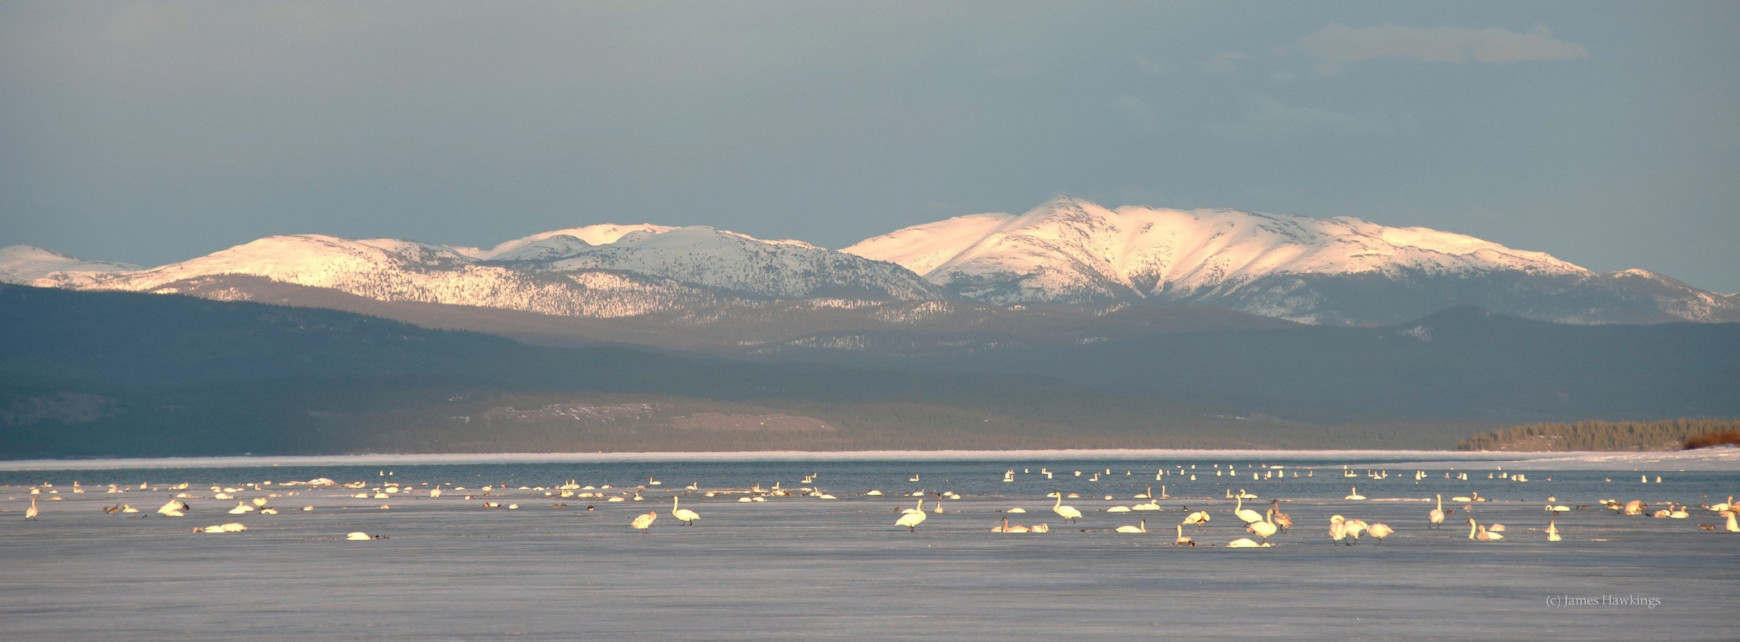 The Yukon is an important area for migrating birds, including tens of thousands of swans. Learn more about the Pacific Coast Population here.